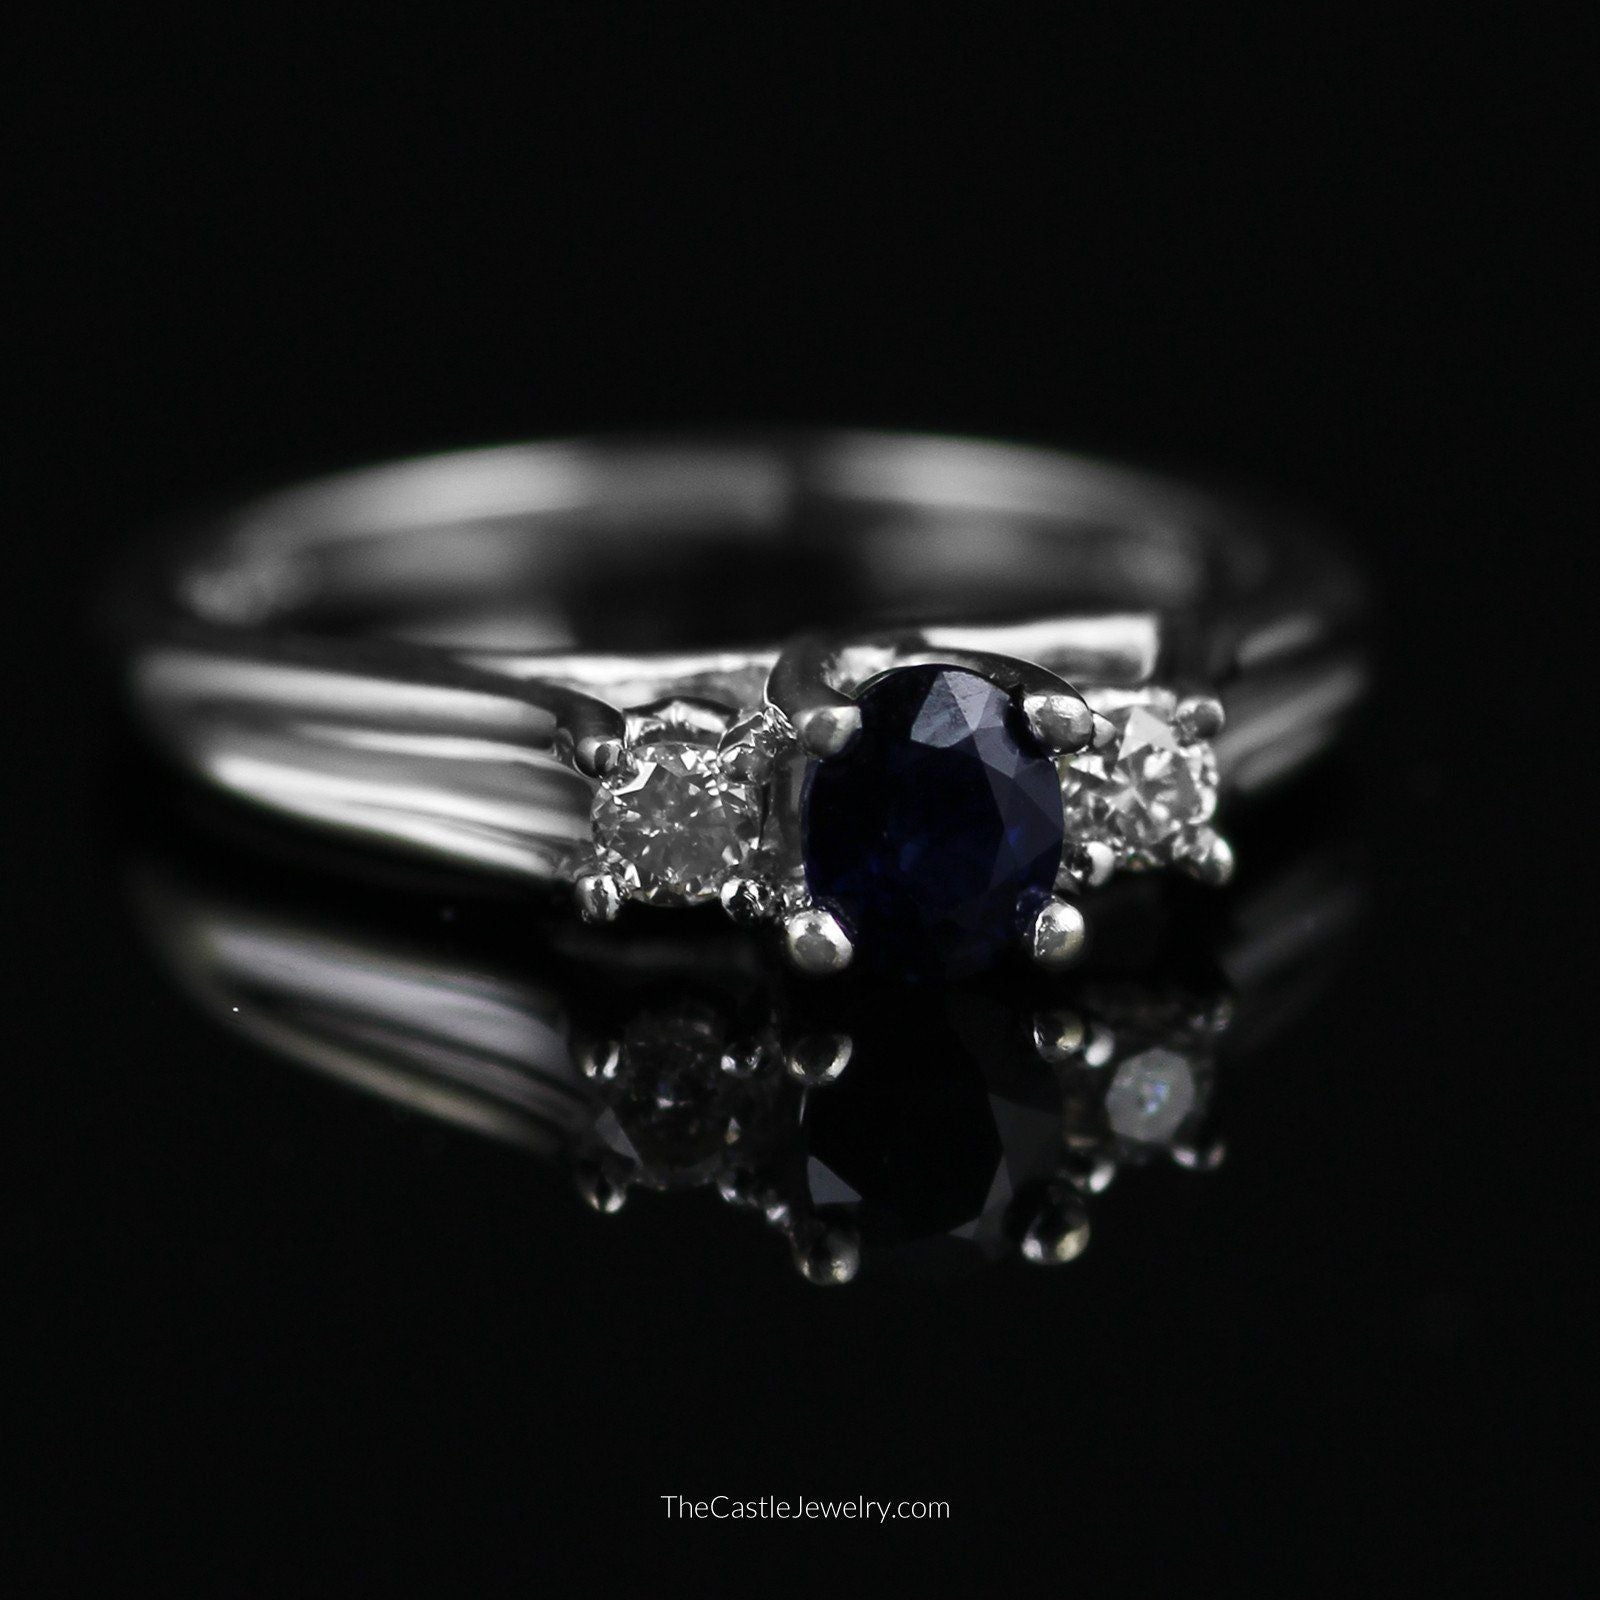 Oval Sapphire with Diamond Accents in 10K White Gold